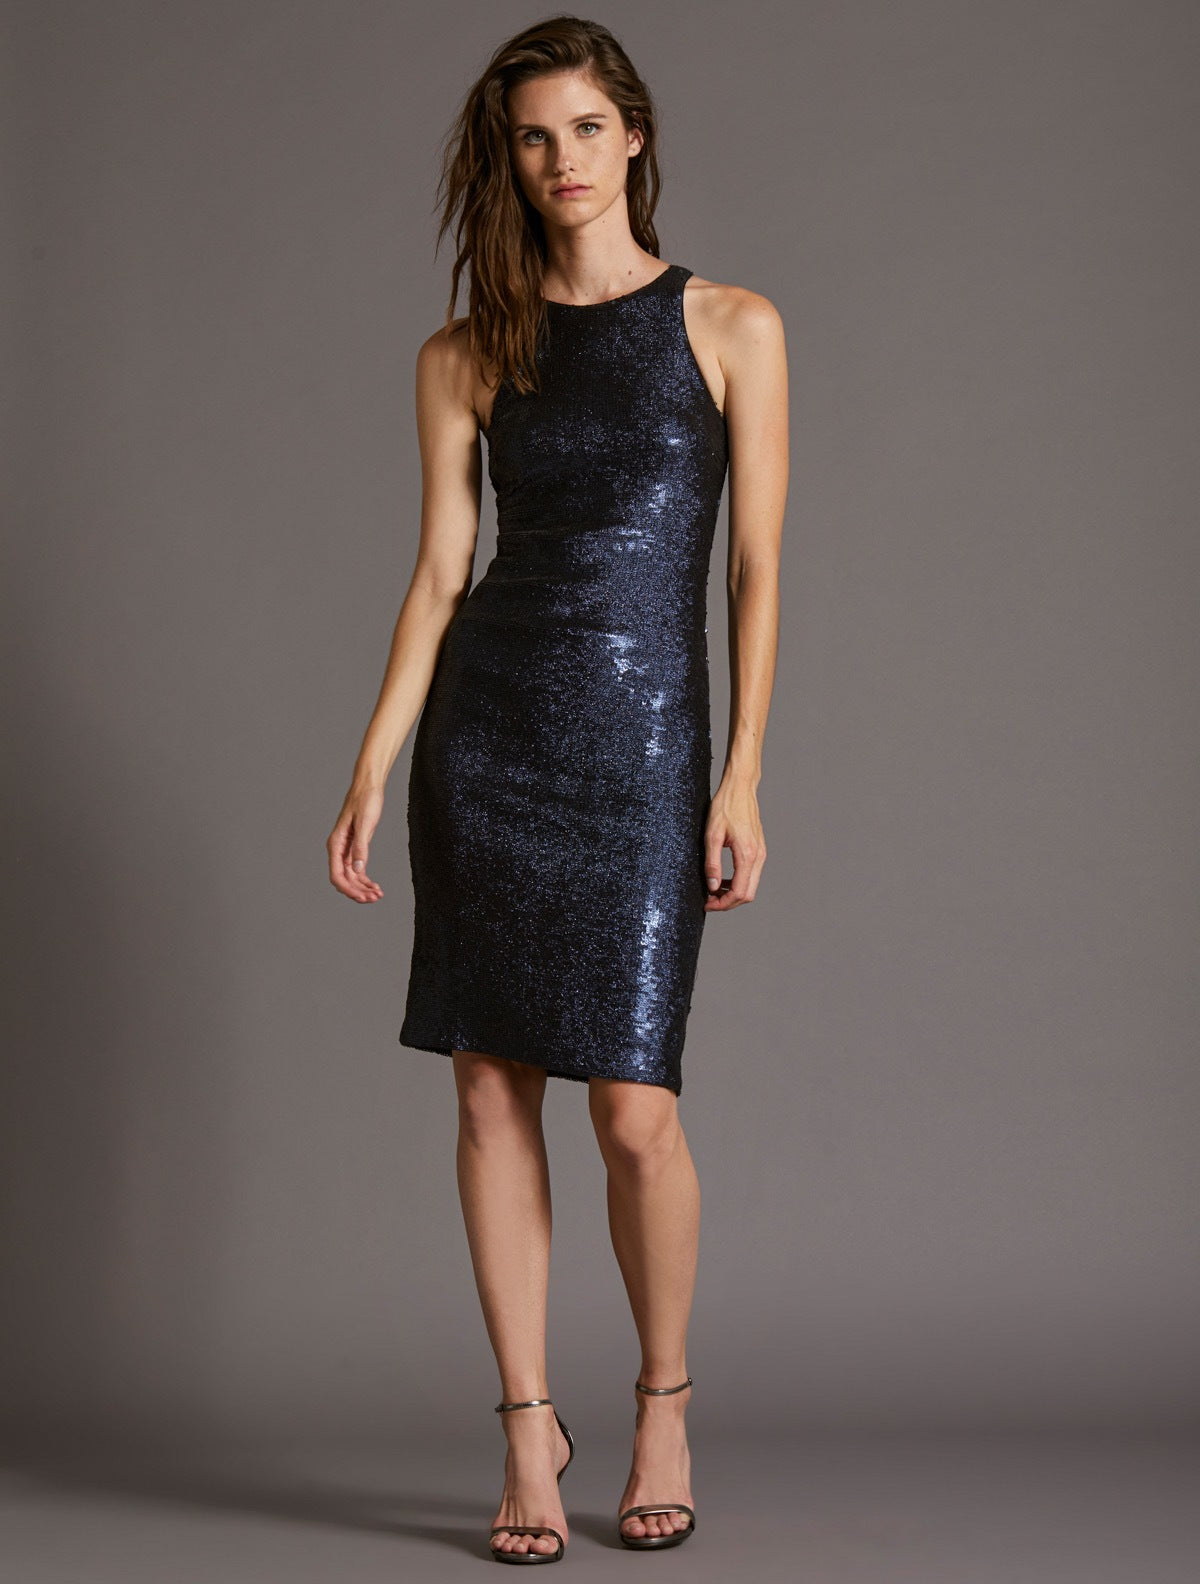 SEQUIN DRESS - Halston